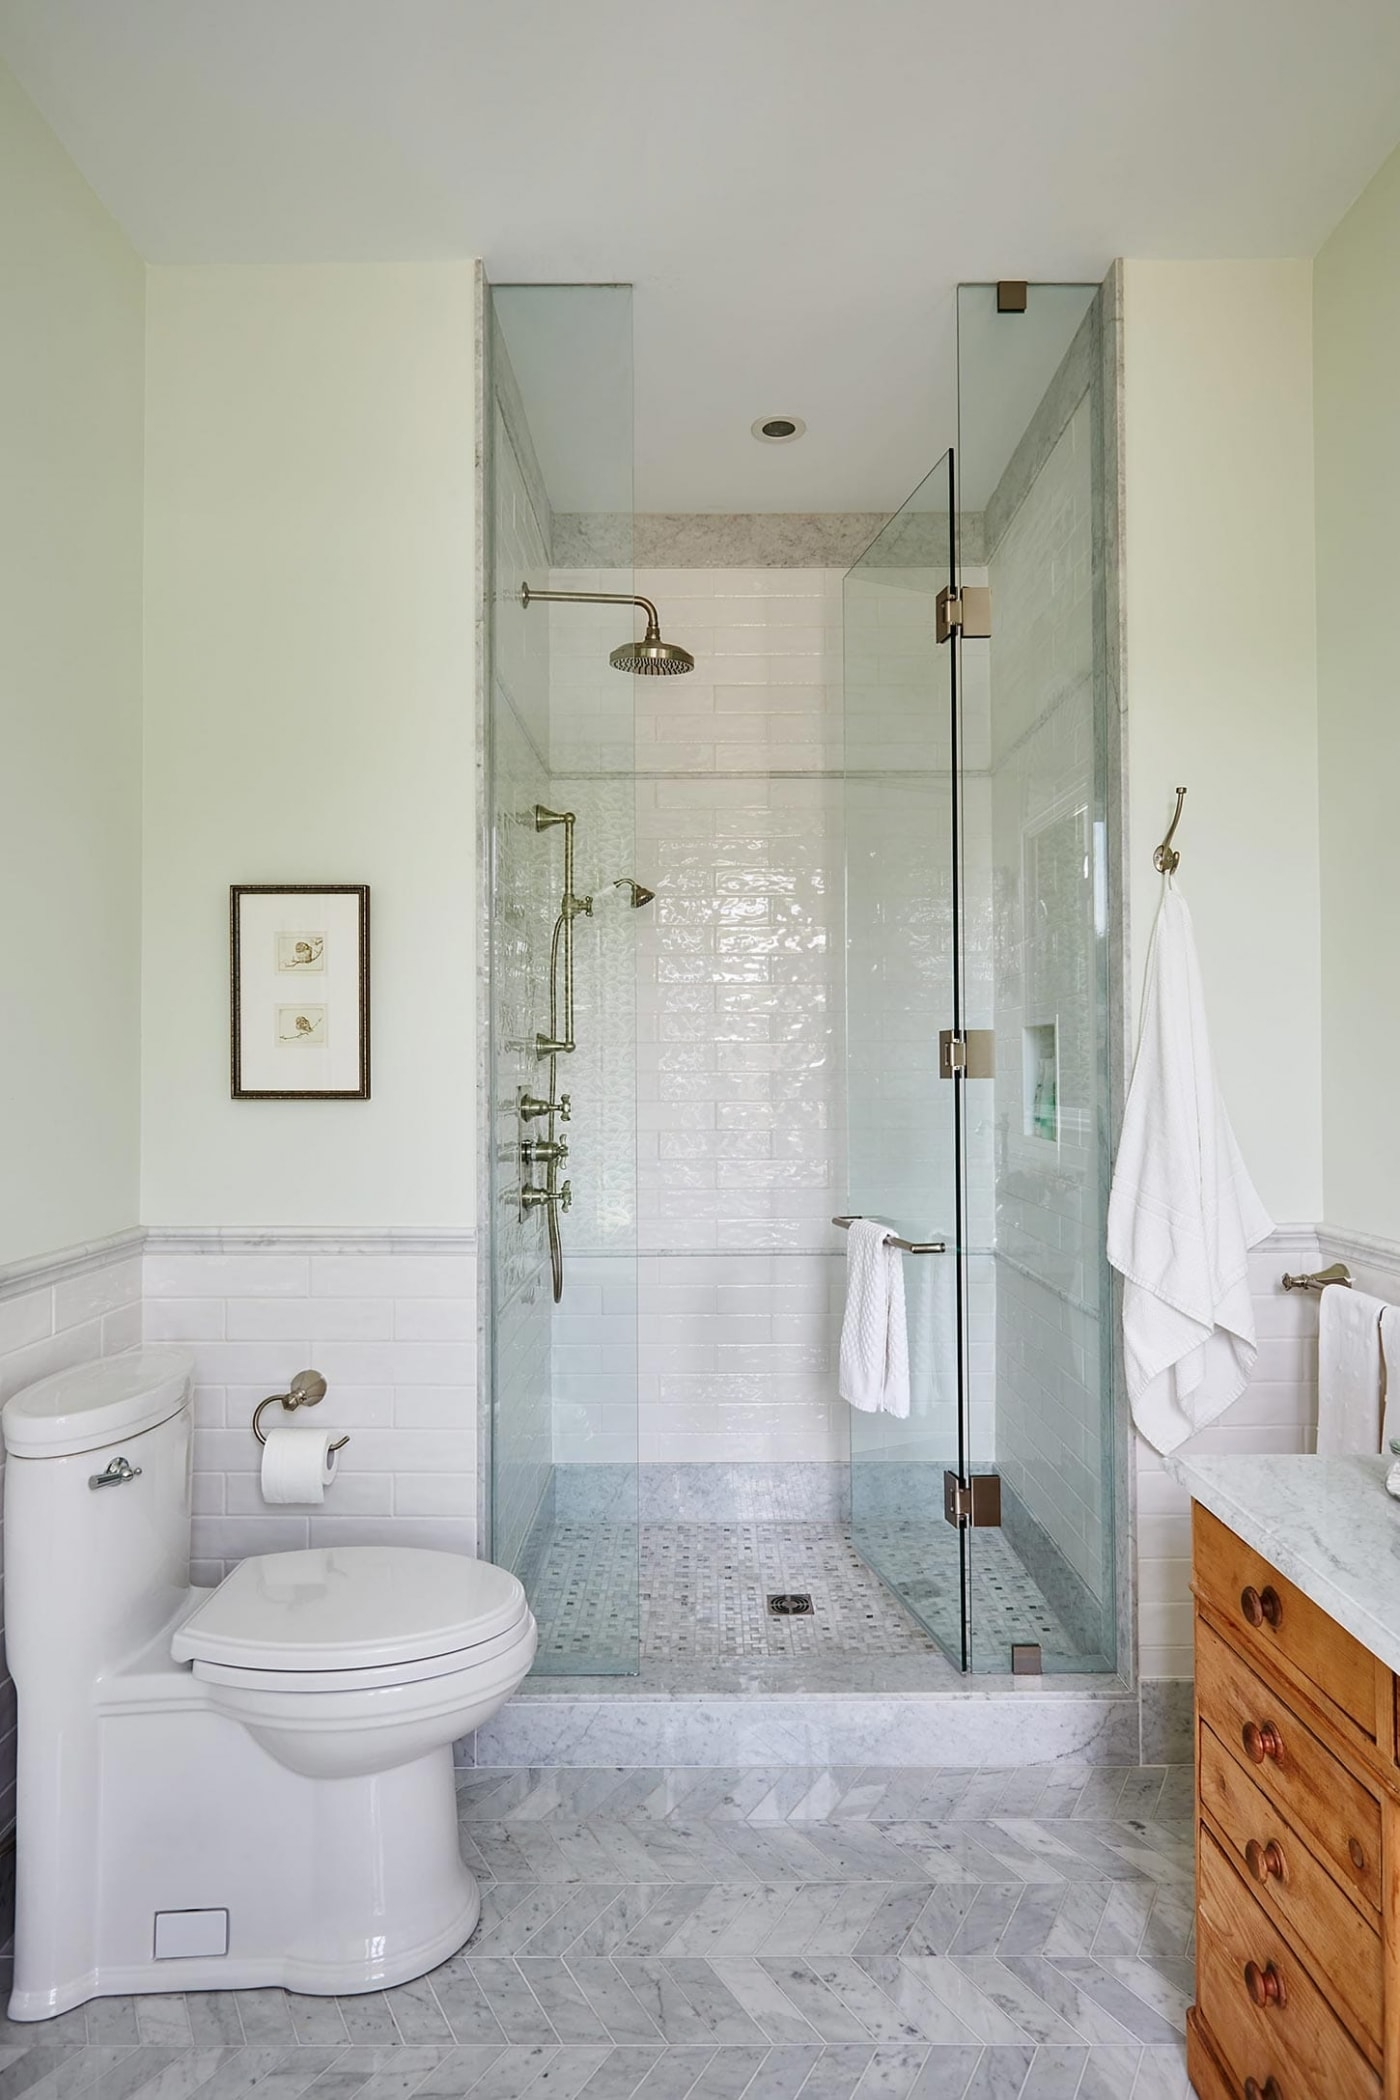 White subway tile and glass Standup Shower in elegant marble bathroom by Sarah Richardson